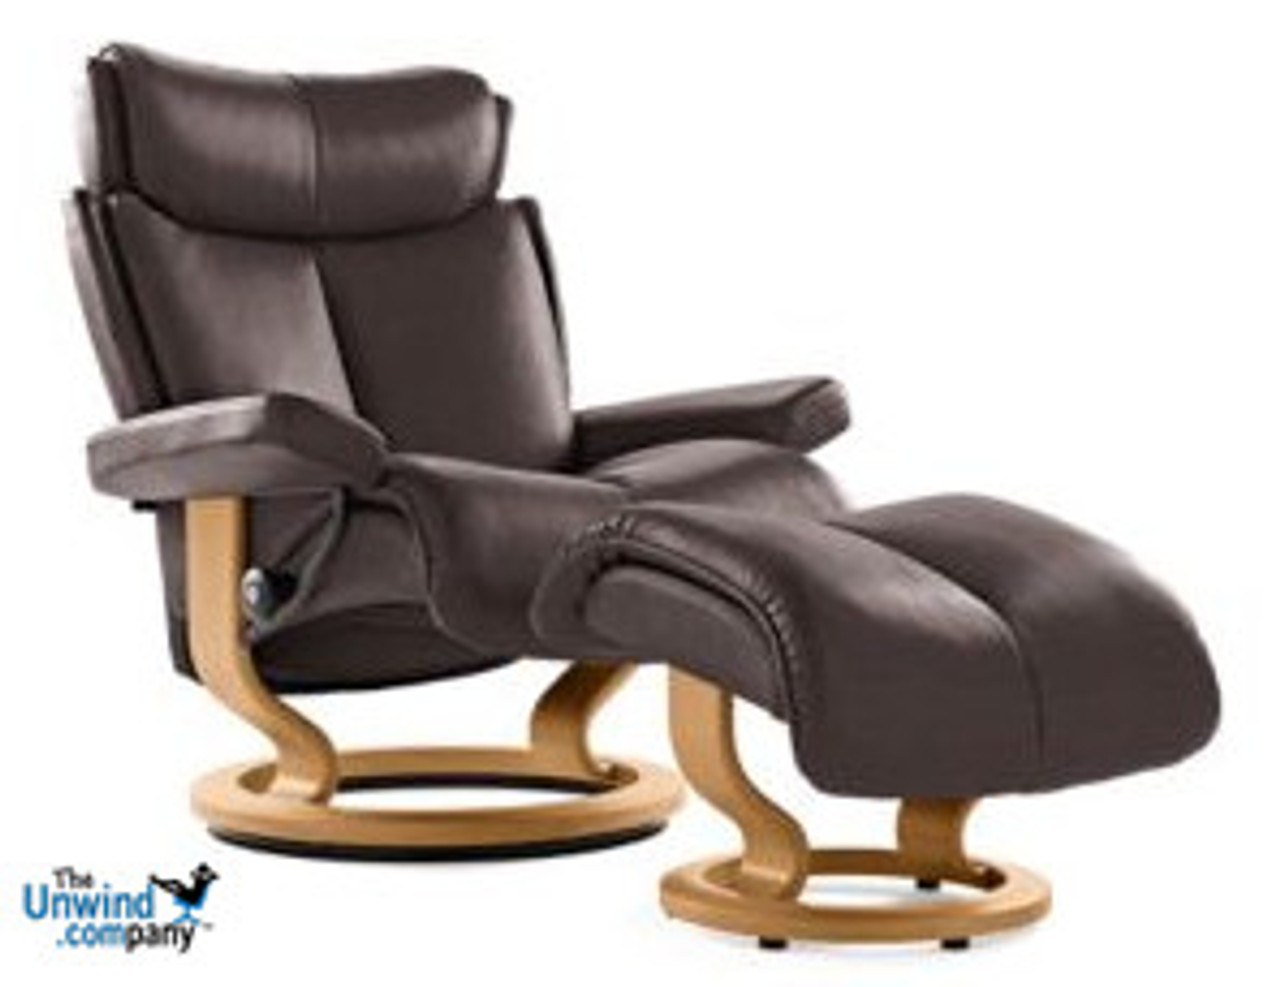 Ekornes Stressless Magic Recliner Small- Stress-free Delivery on home furniture sectionals, home furniture gliders, home furniture upholstery, home furniture tables, home furniture dining, home furniture bars, home furniture couch, home furniture living room groups, home furniture clocks, home furniture product, home furniture mattress, home furniture chairs, home furniture desks, home furniture office, home furniture rugs, home furniture entertainment centers, home furniture tv stands, home furniture living room sets, home furniture accents, home furniture dressers,